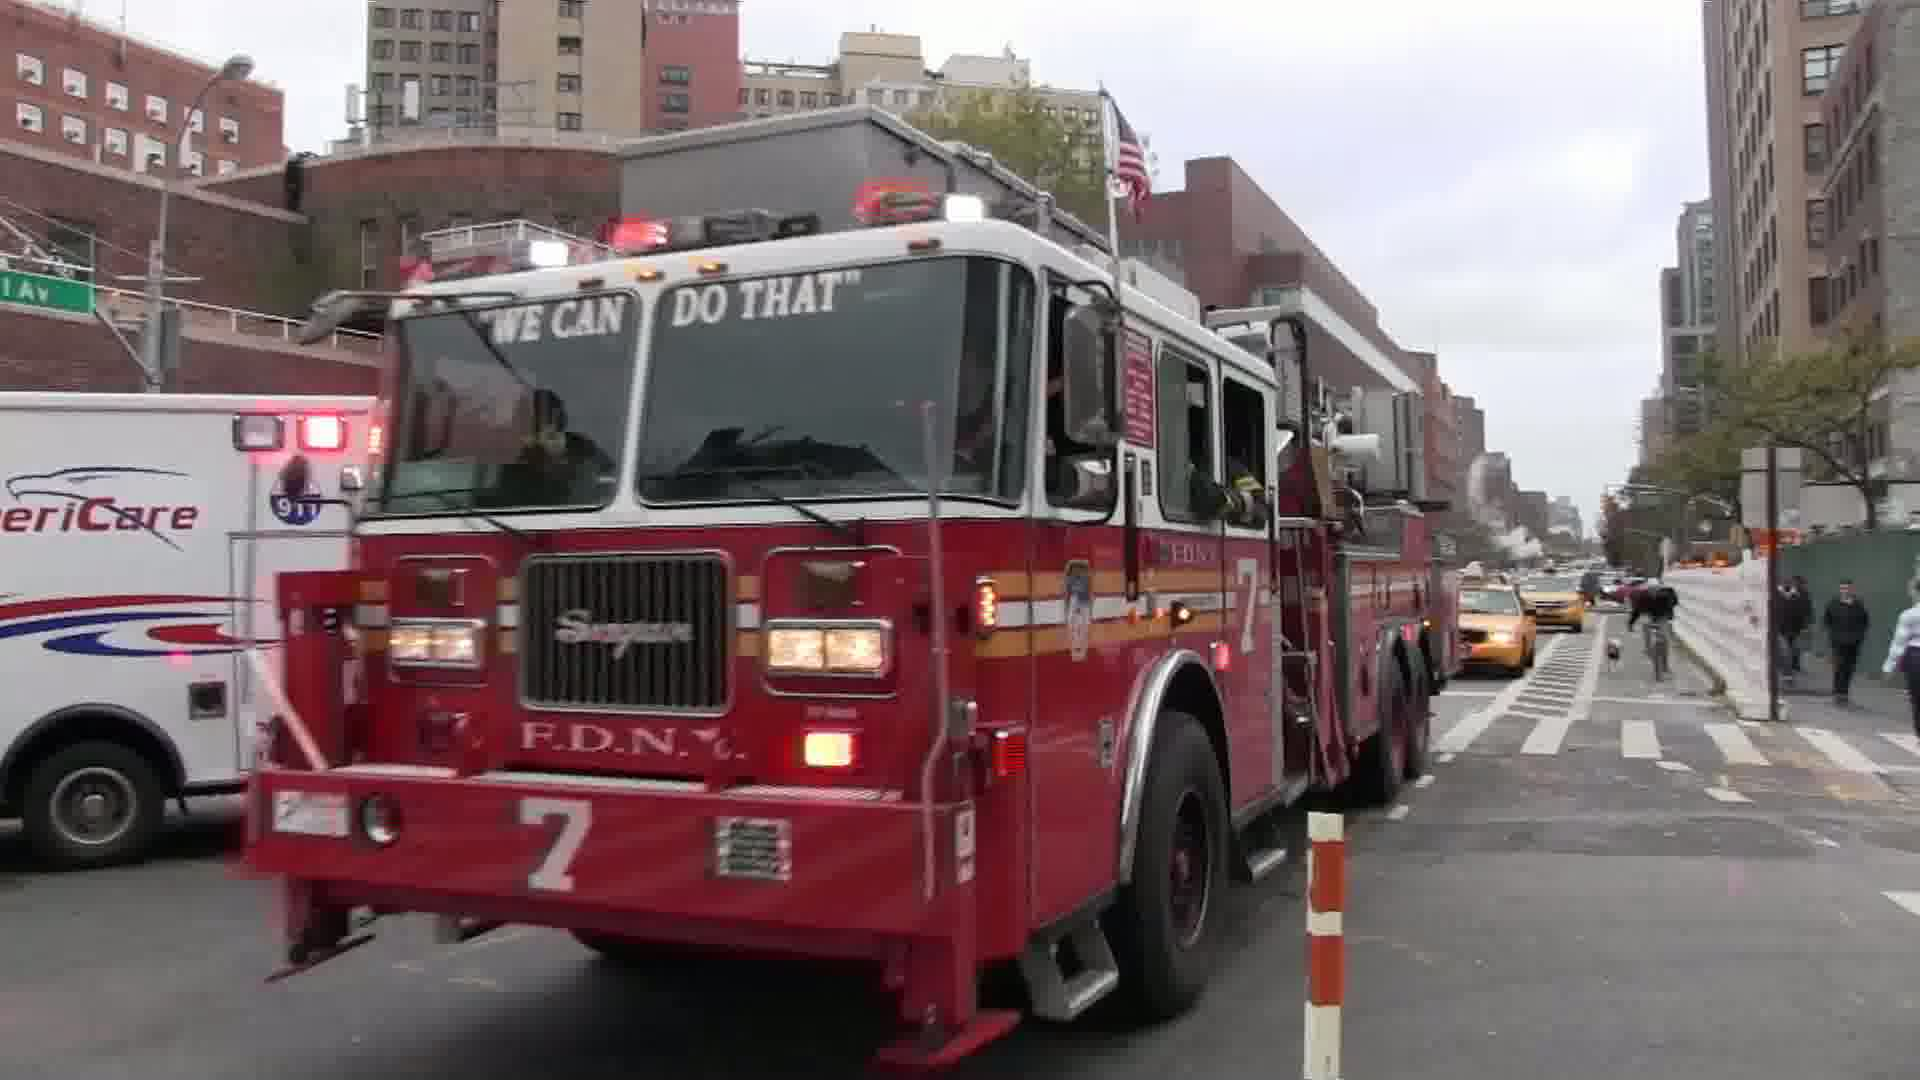 Tower Ladder 7 FDNY